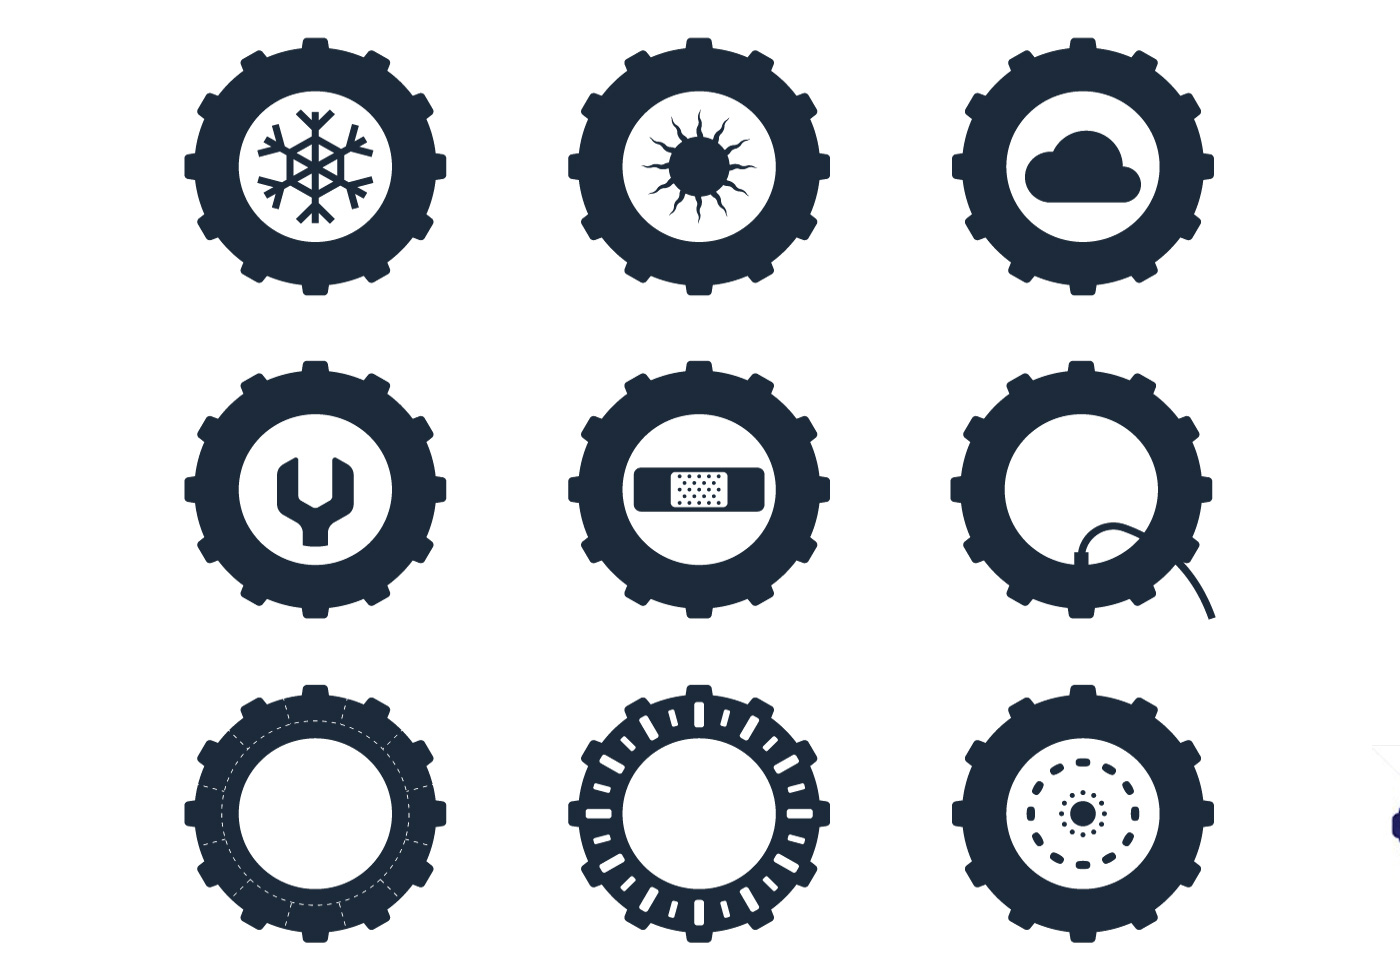 Tractor Parts Icon : Tractor tire icons download free vector art stock